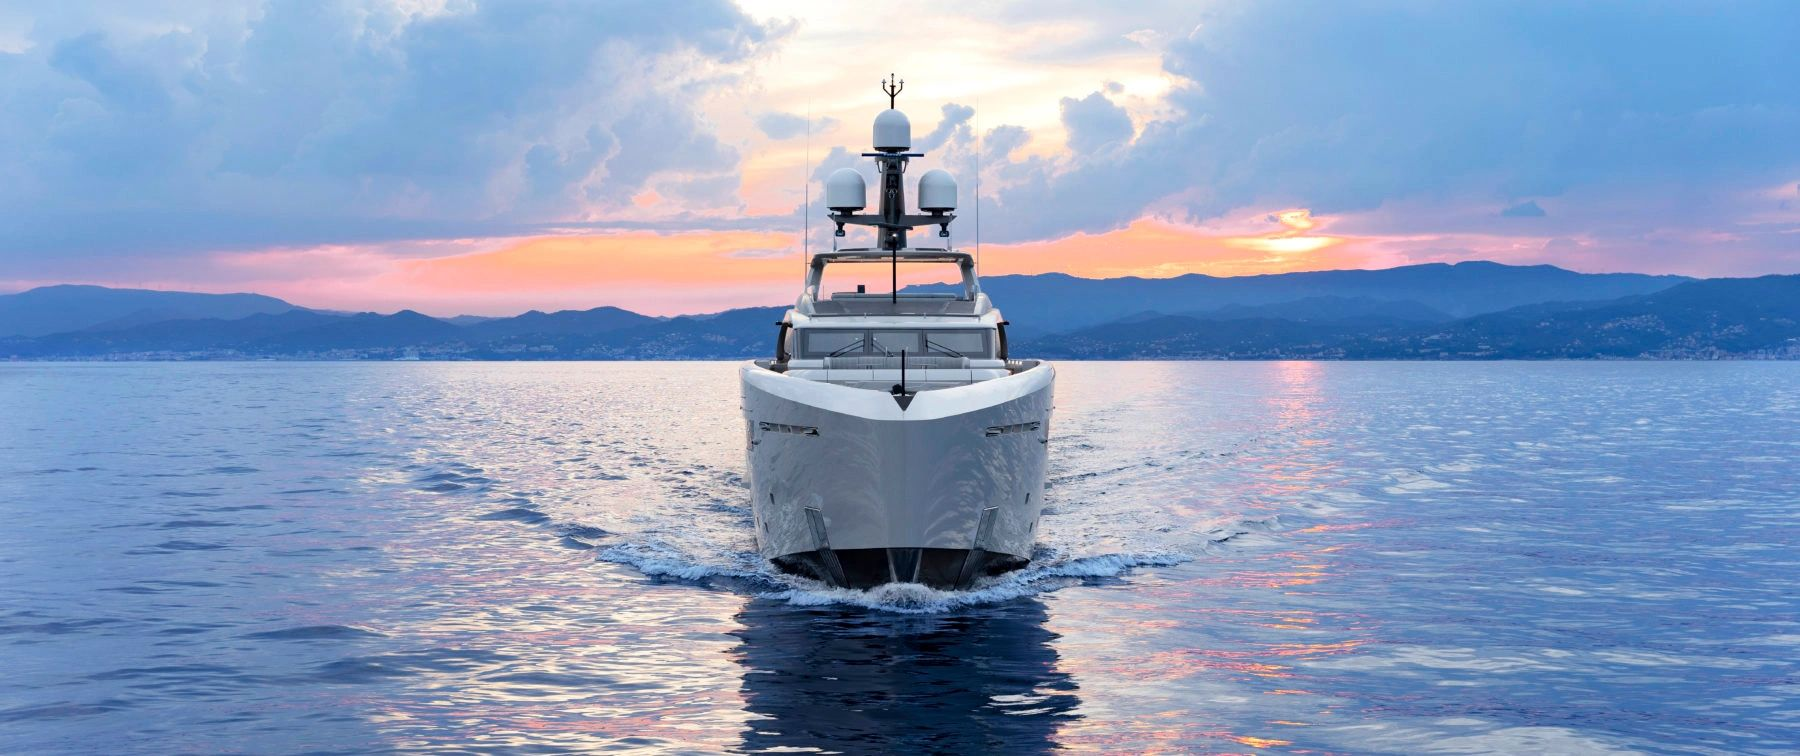 5 Top Luxury Yachts at the Monaco Yacht Show 2019